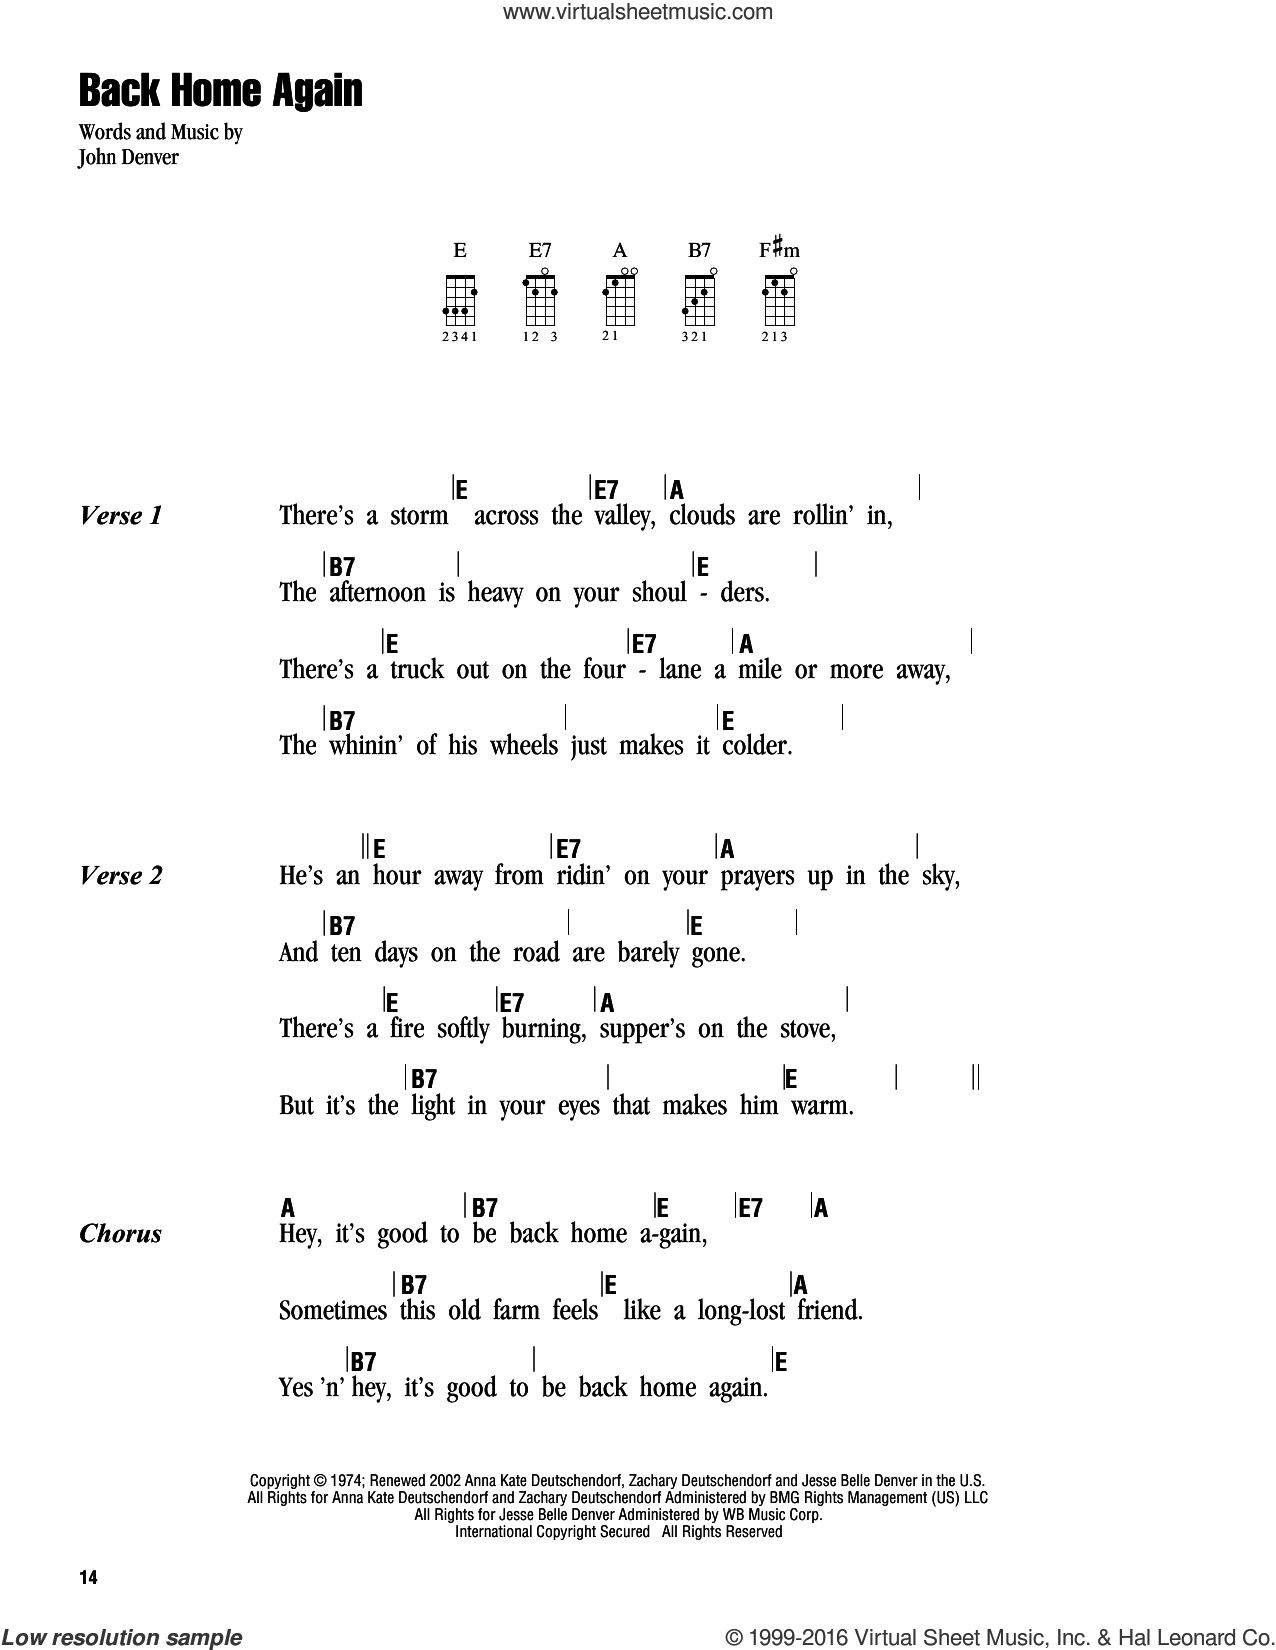 Back Home Again sheet music for ukulele (chords) by John Denver, intermediate skill level